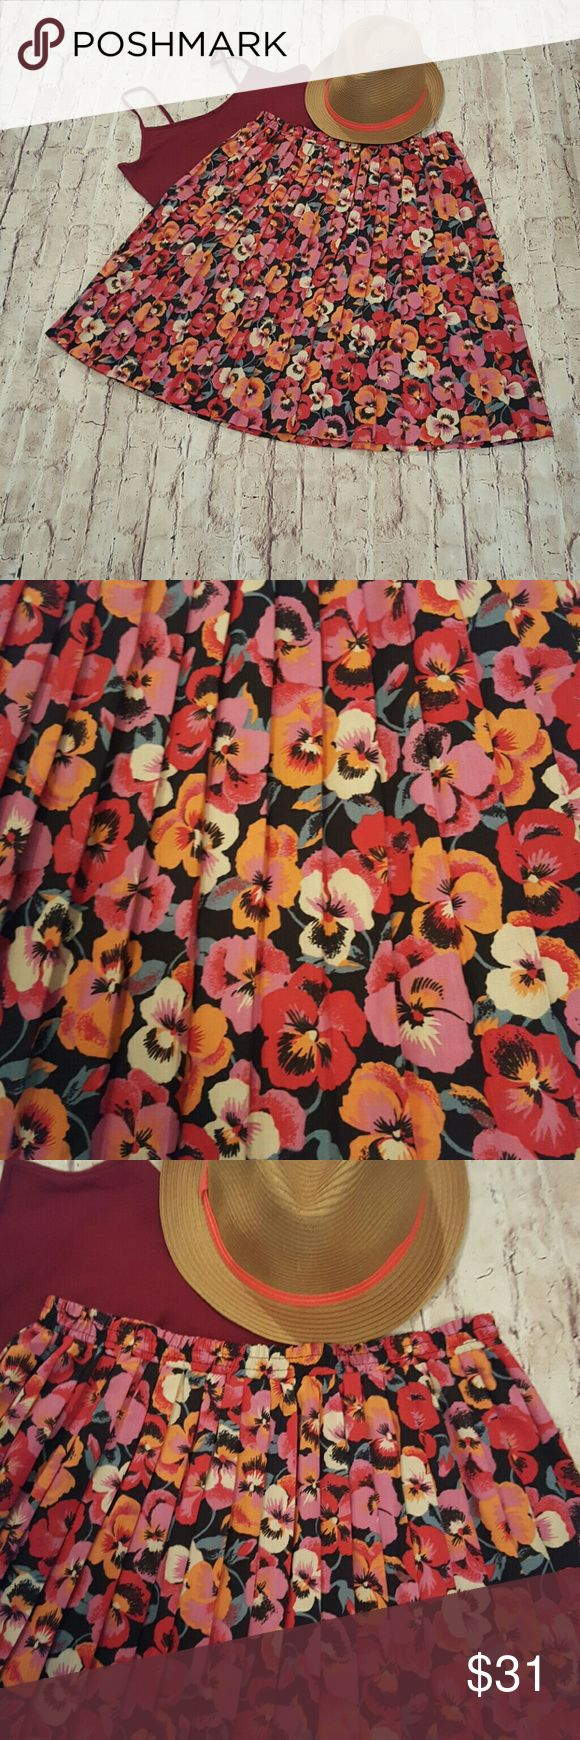 Vintage 90's Floral Pleated Skirt EUC Party Like It's 1999 in This Floral Pleated Skirt! Light and Breezy...  Perfect for All the Up and Coming Festivals... EUC Skirts